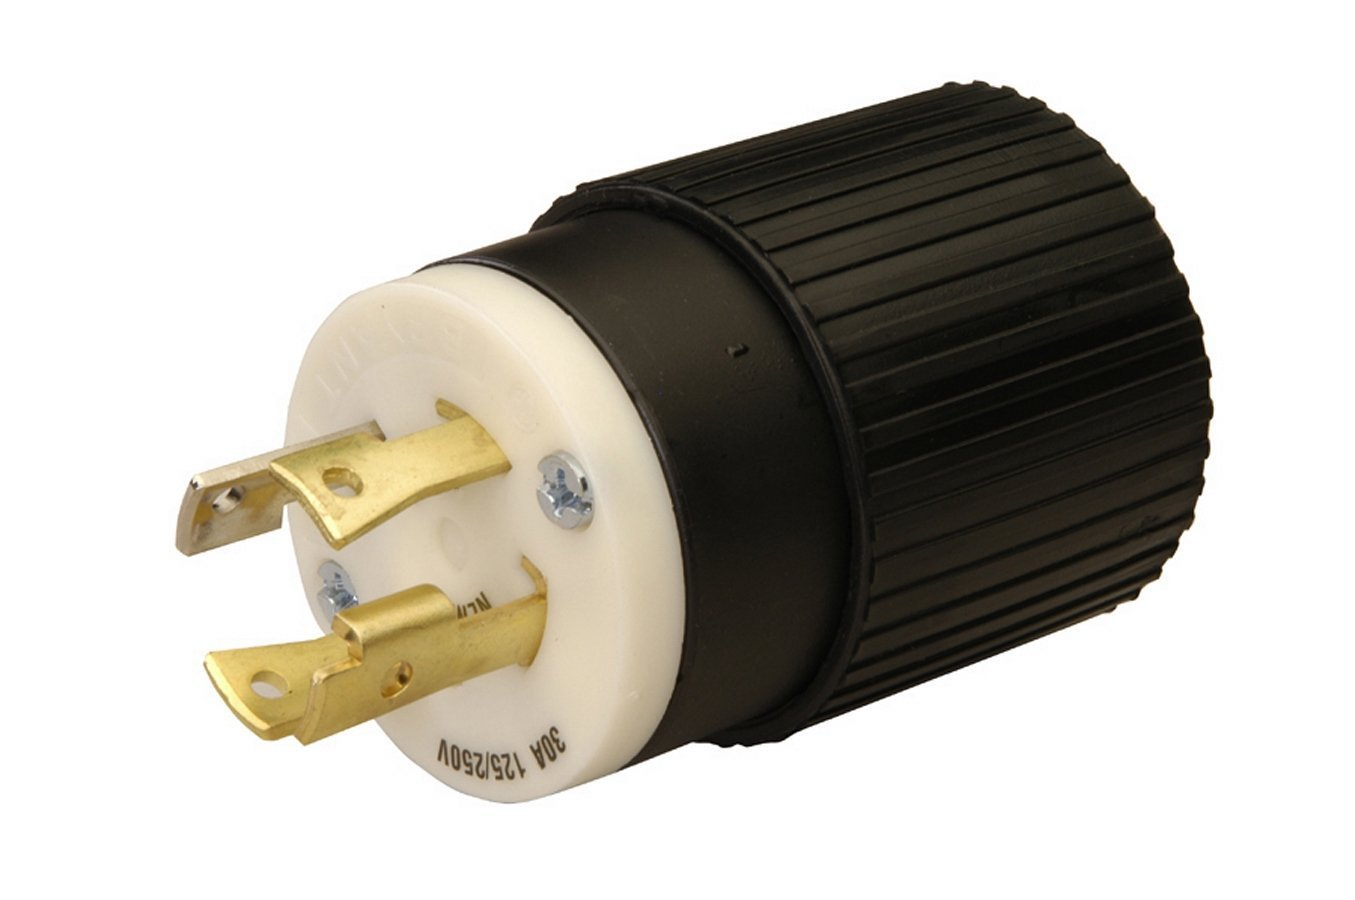 Reliance Controls L1430P 30-Amp 125/250 Vac Male Plug for Generator Cords by Reliance Controls